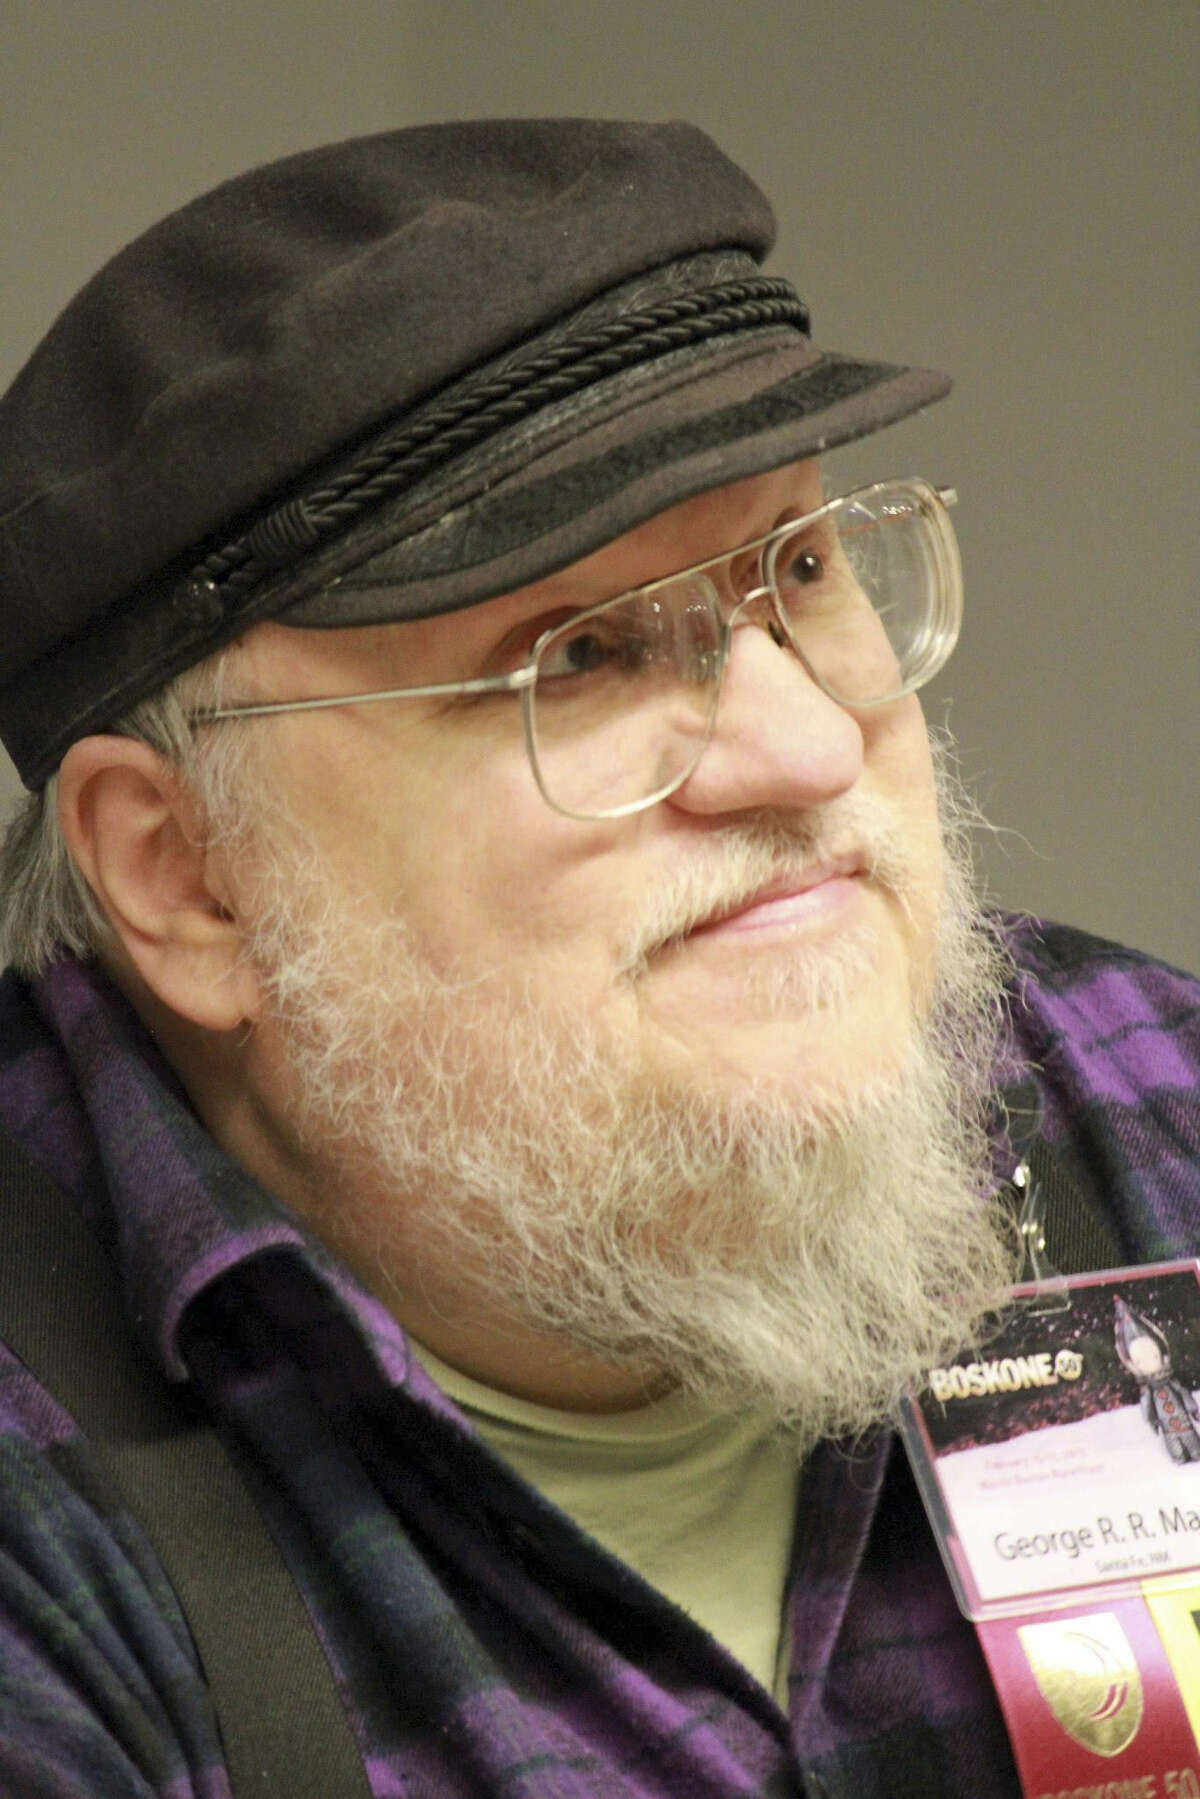 Fantasy novelist George R.R. Martin will be at Worldcon.